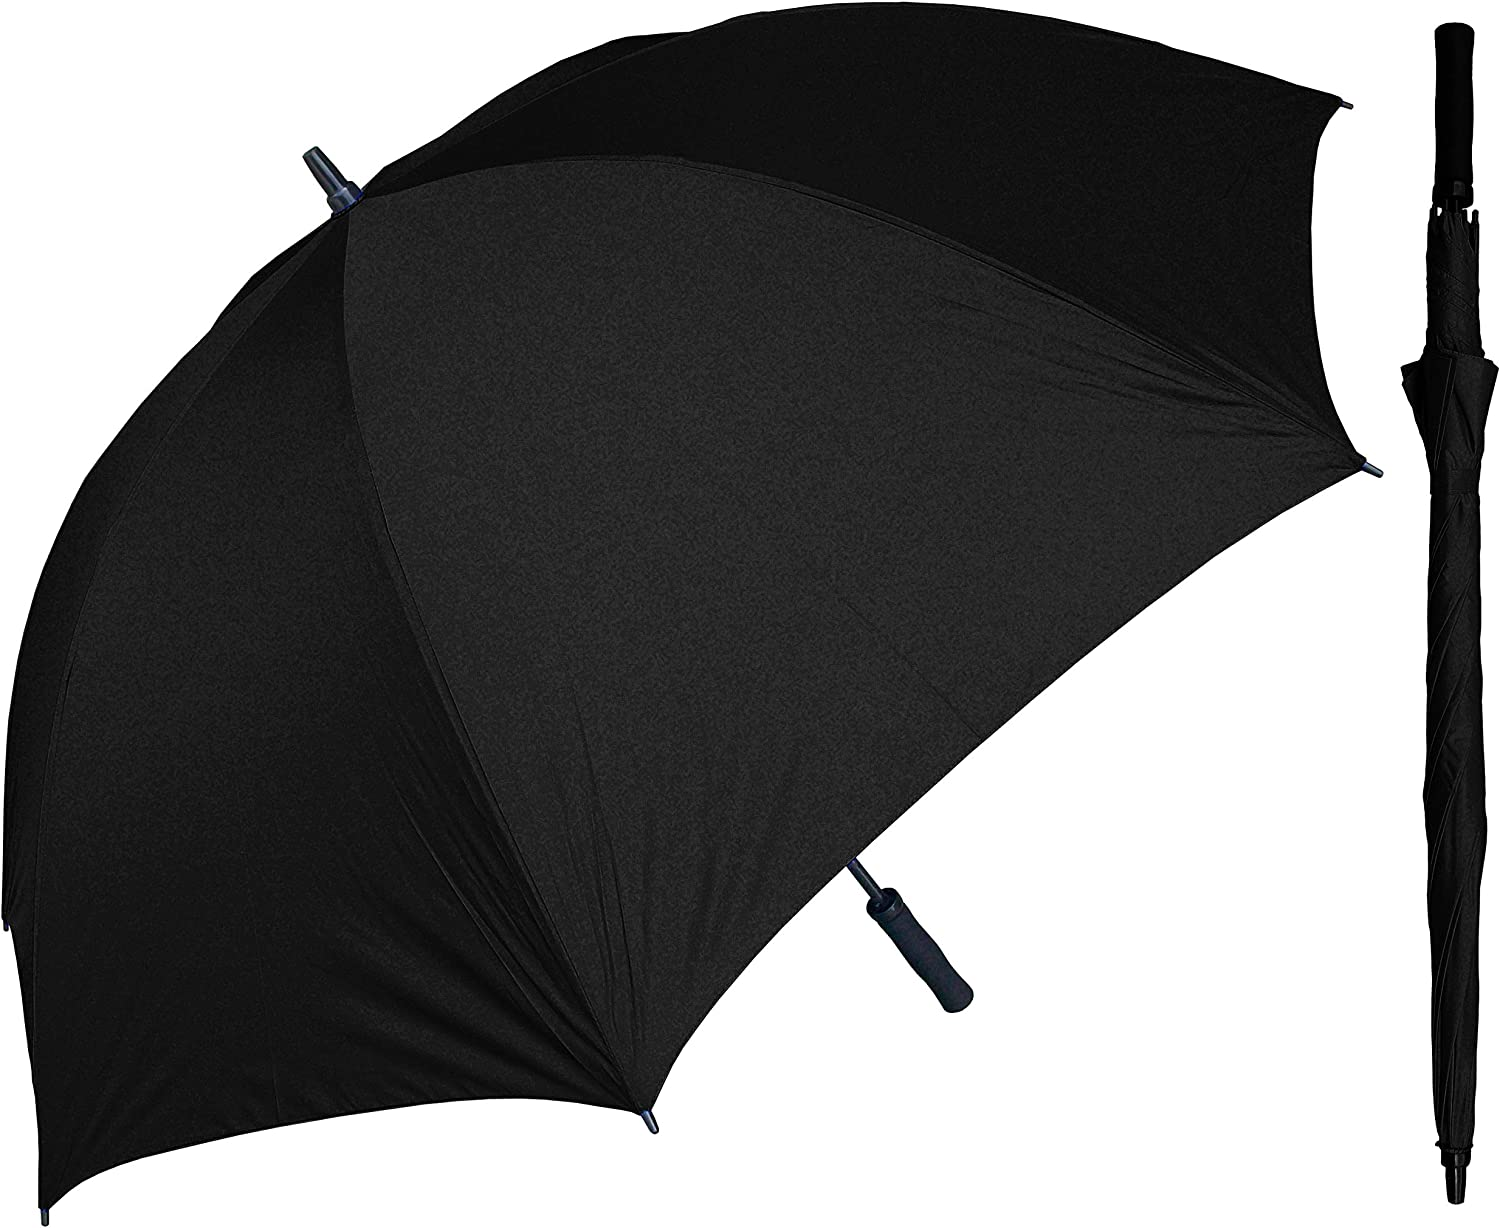 Details about  /Wooden Long Handle Umbrella Large Windproof Non Automatic Waterproof Sun Parasol